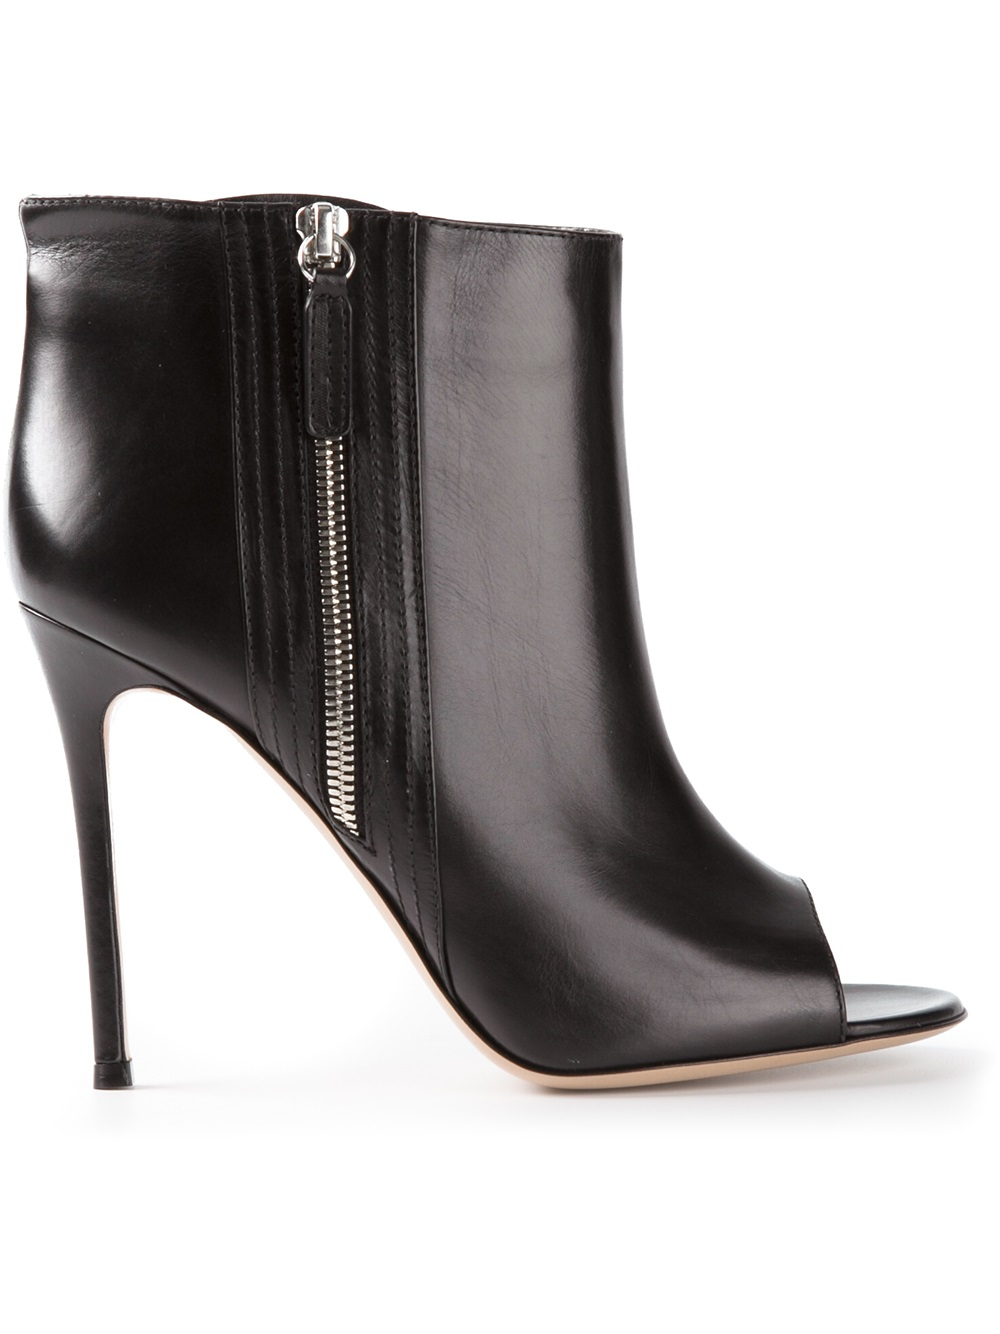 Gianvito Rossi Peep Toe Ankle Boots in Black